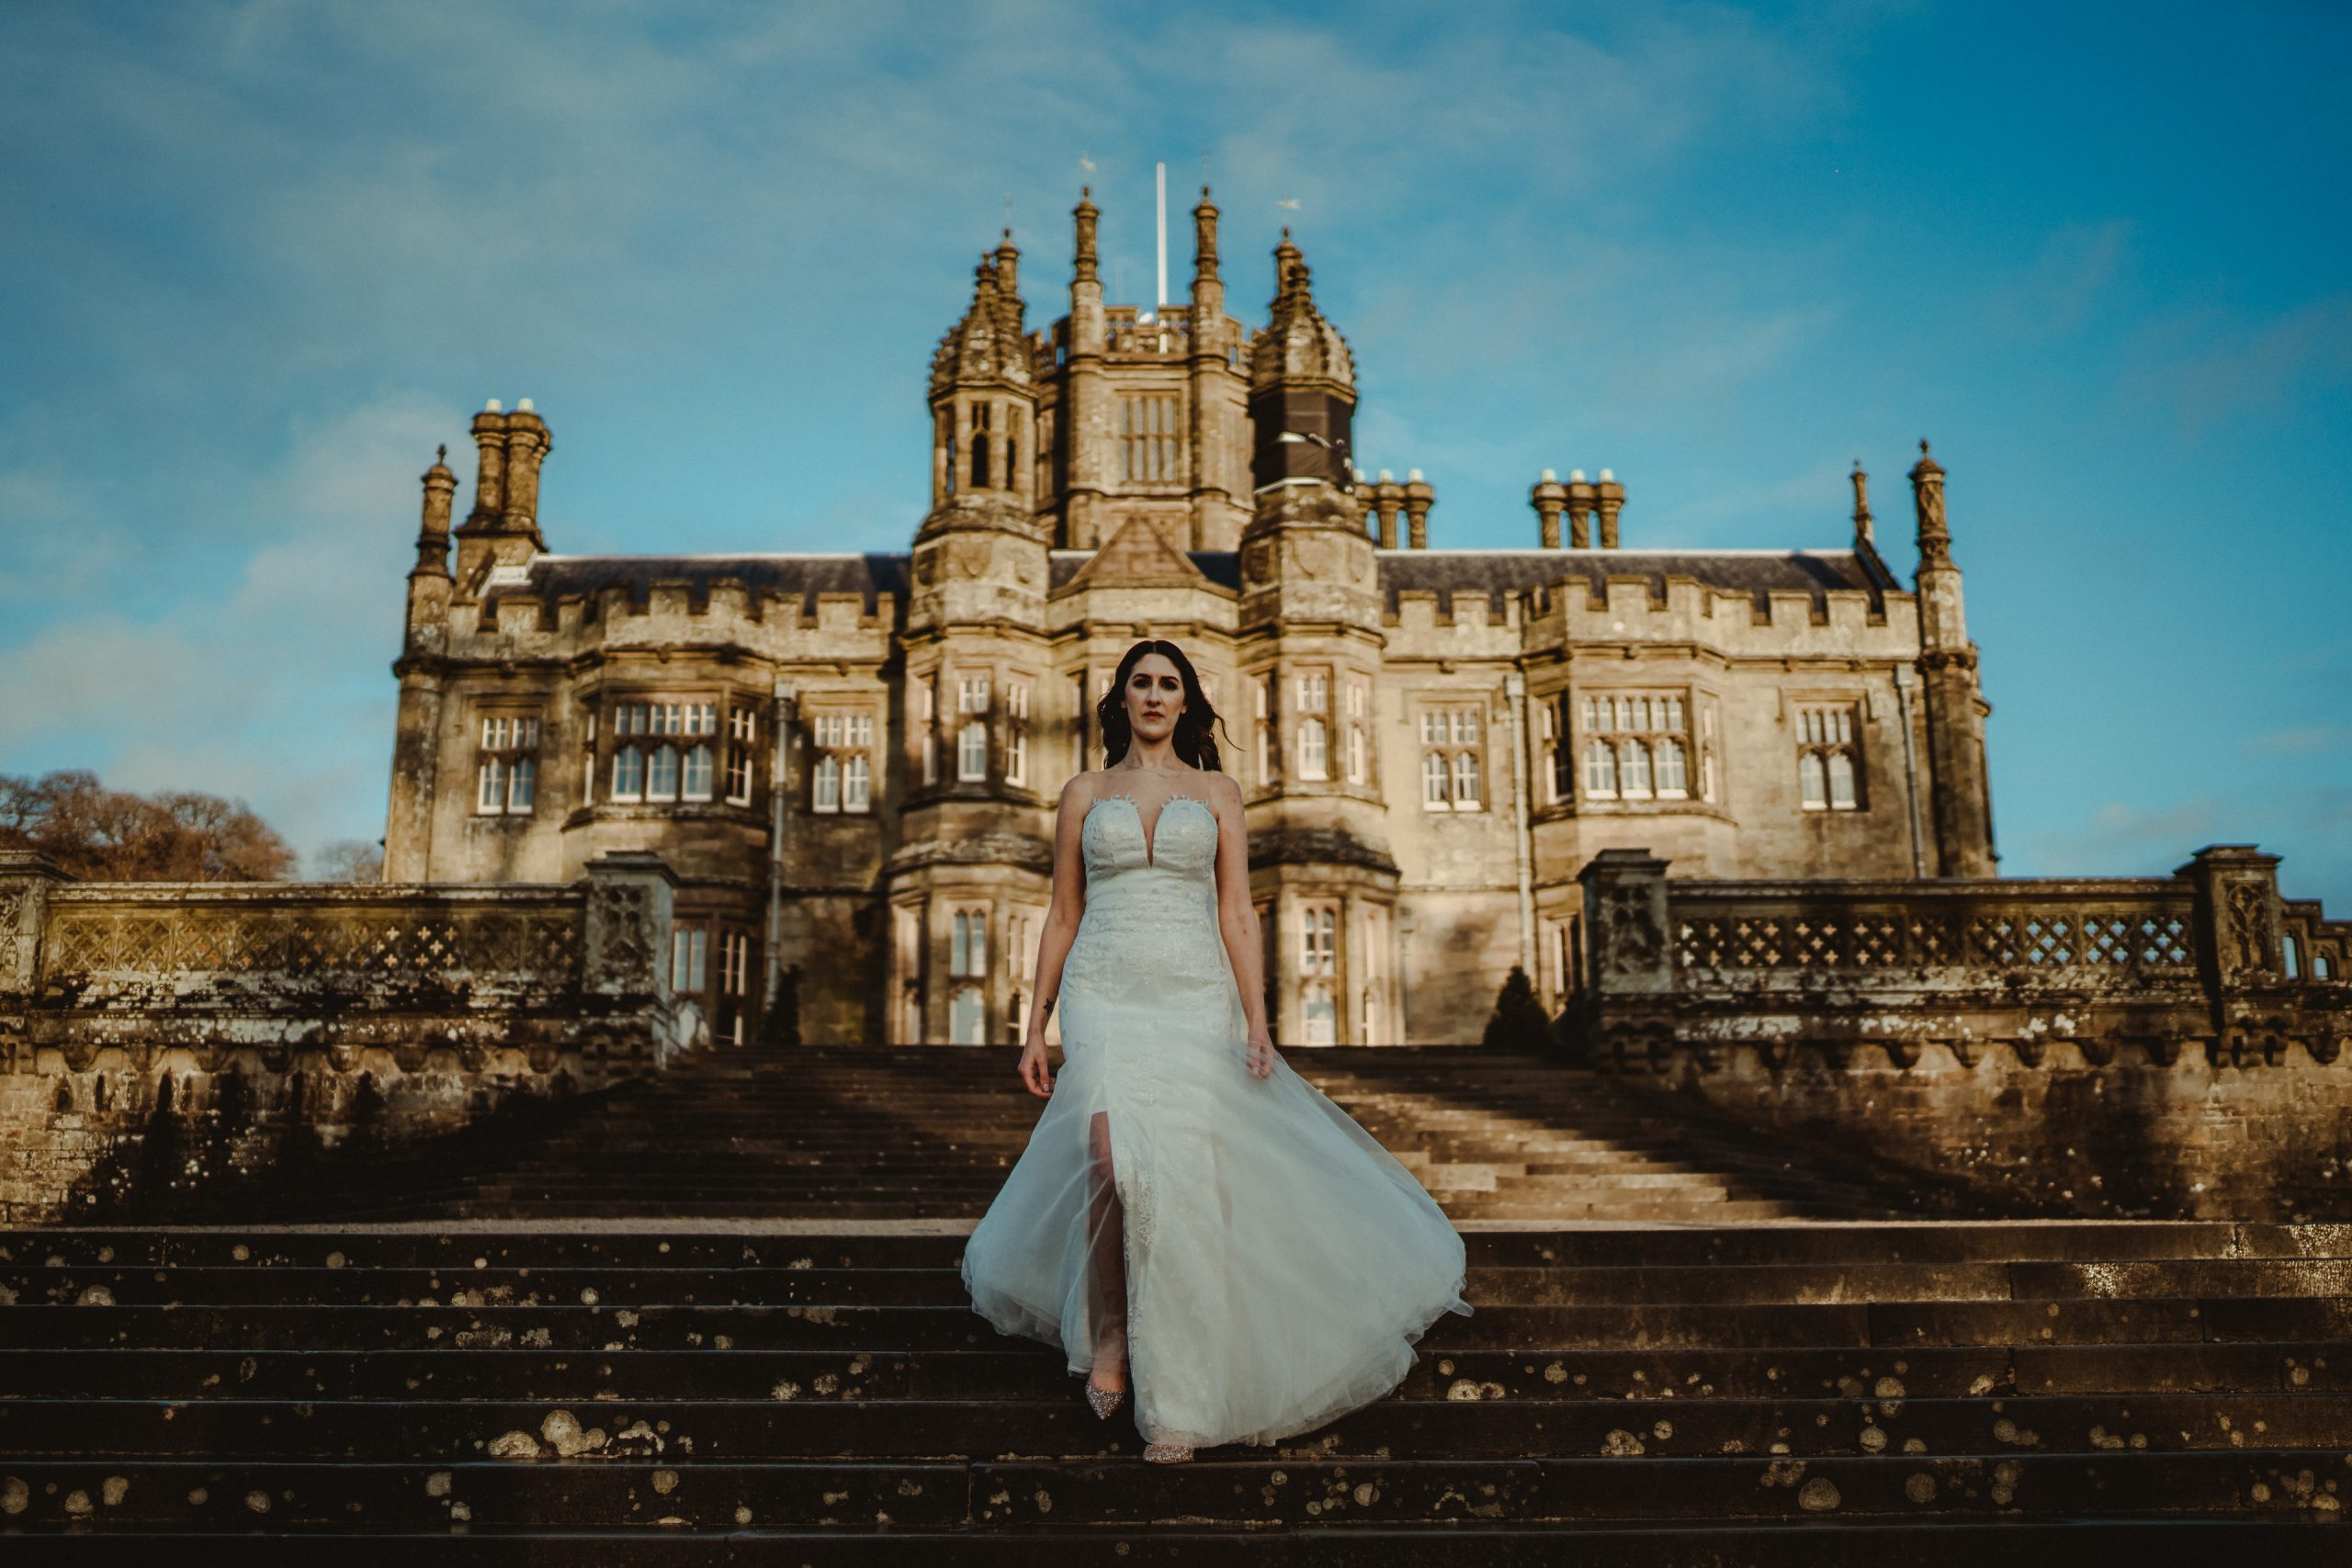 The bride walks away from the venue, the full venue is in the back| Full of love